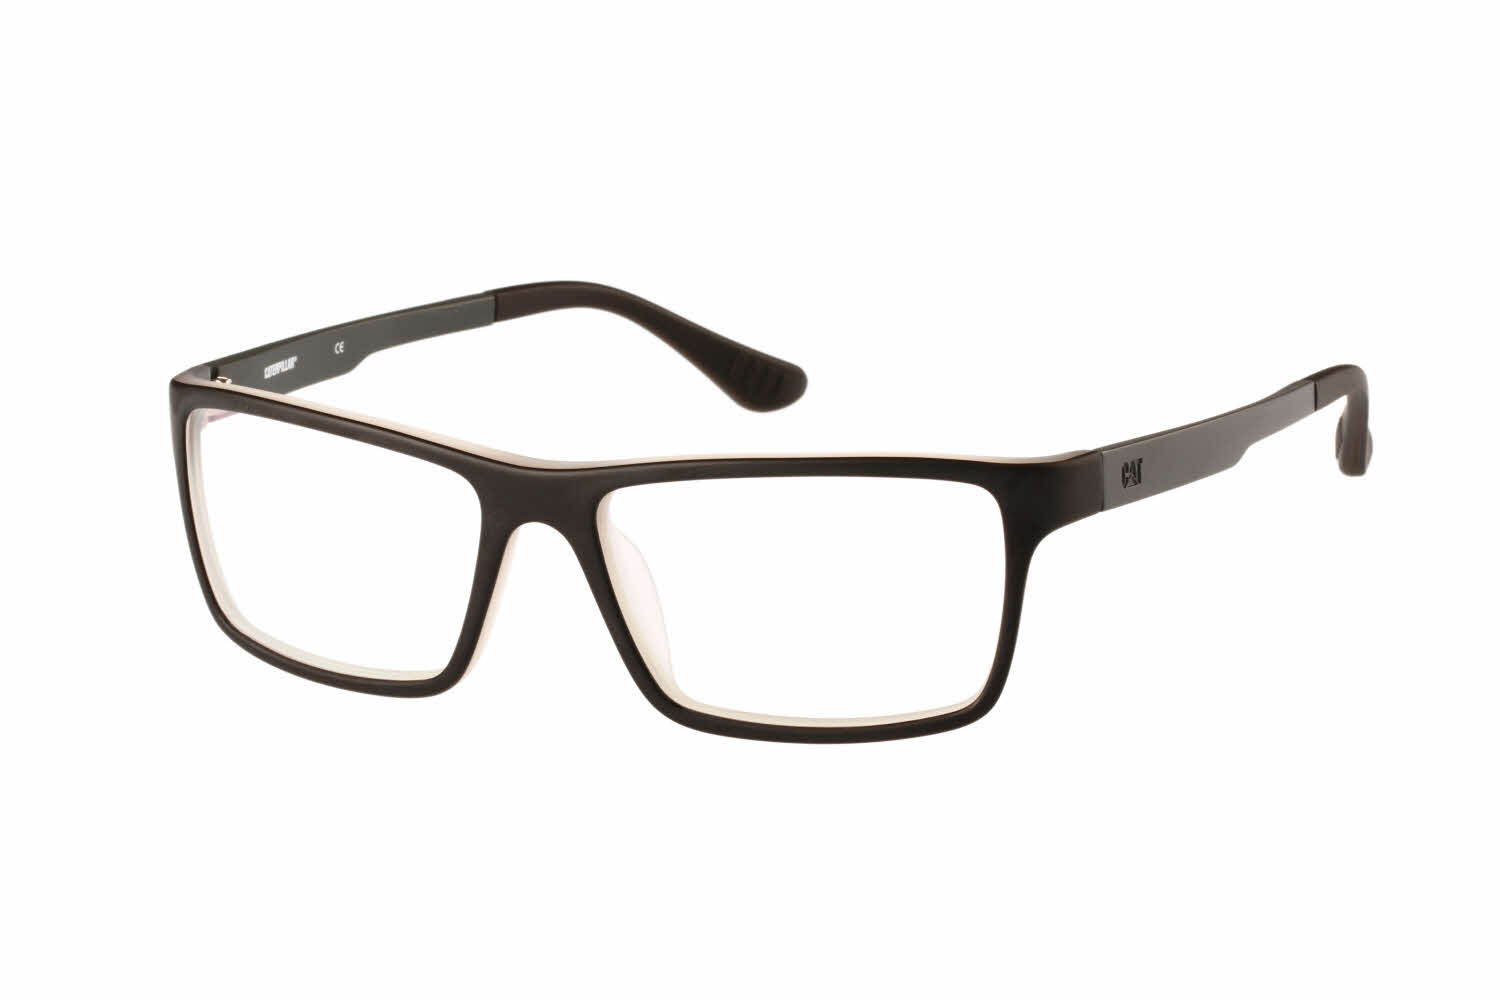 Caterpillar (large size) CTO J02 Eyeglasses Free Shipping